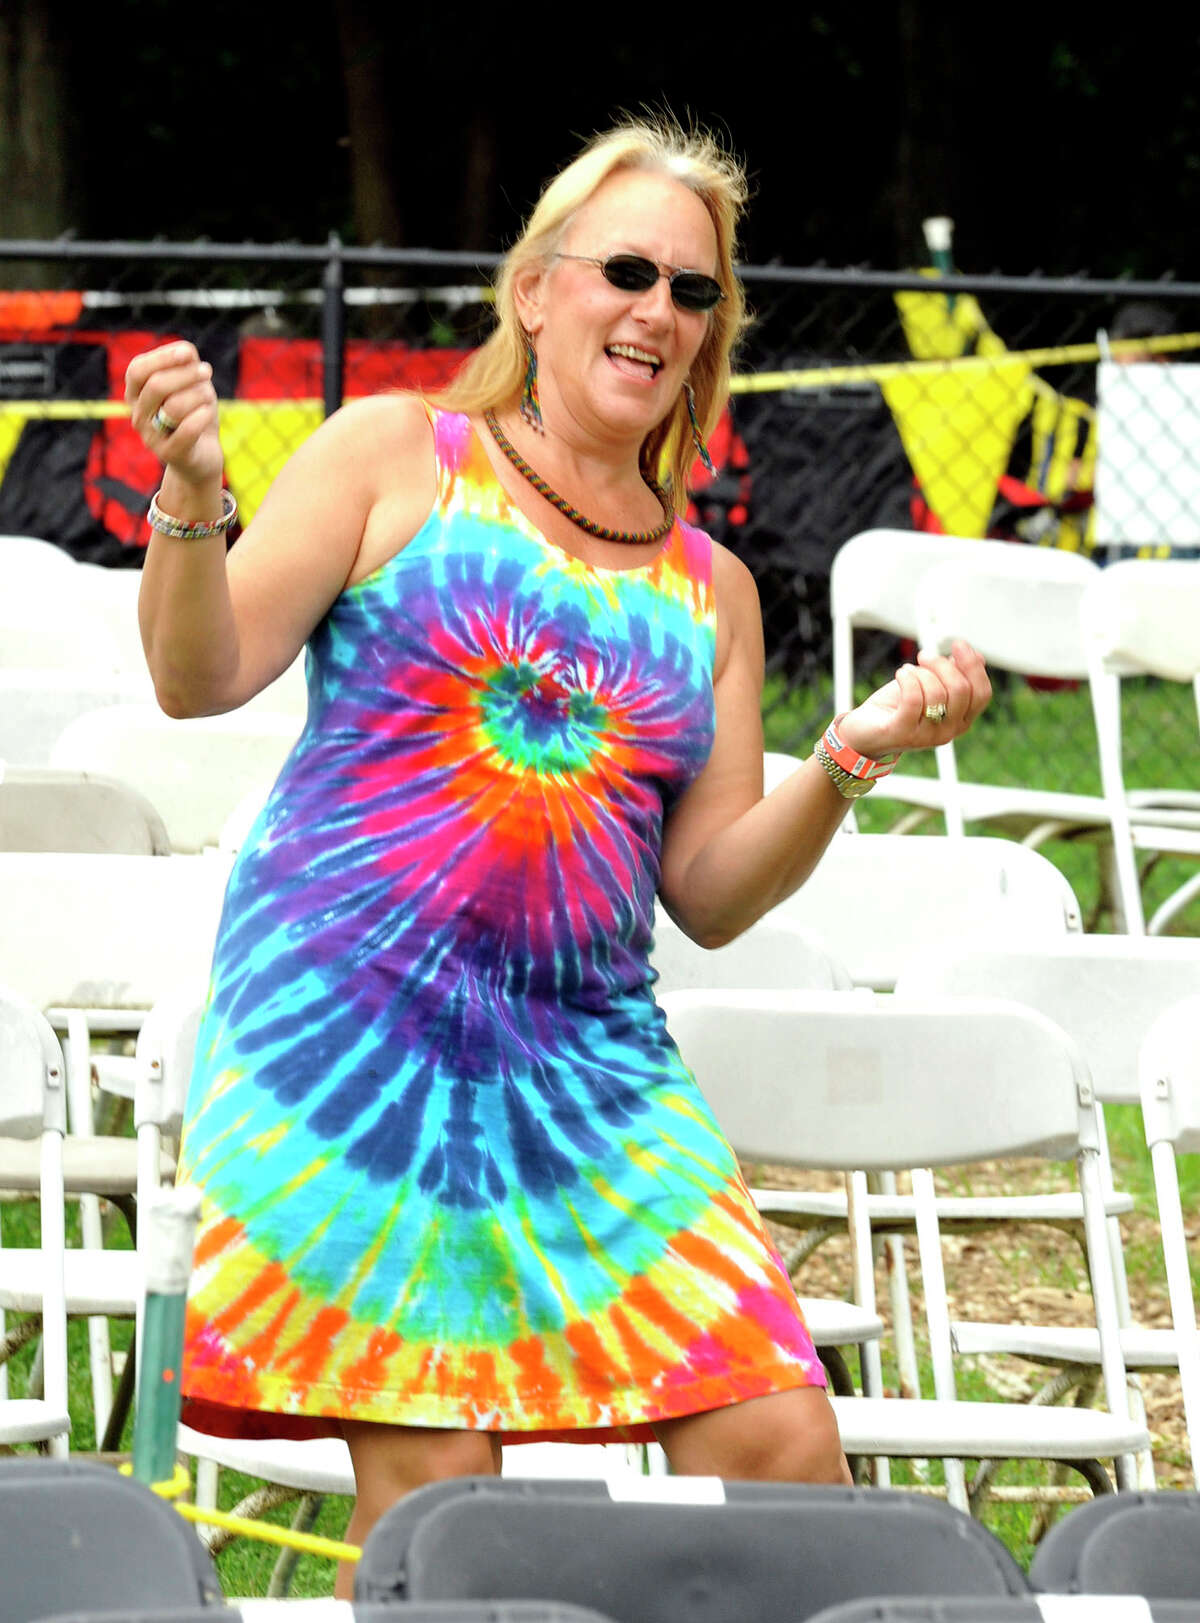 """A free spirit gets her groove on at The Beatles music festival """"Danbury Fields Forever"""" at Ives Concert Park back in 2012. This year's festival will run for two days, Saturday and Sunday, July 26 and 27. There will be 20 bands, plus food, kids' activities and many other attractions."""